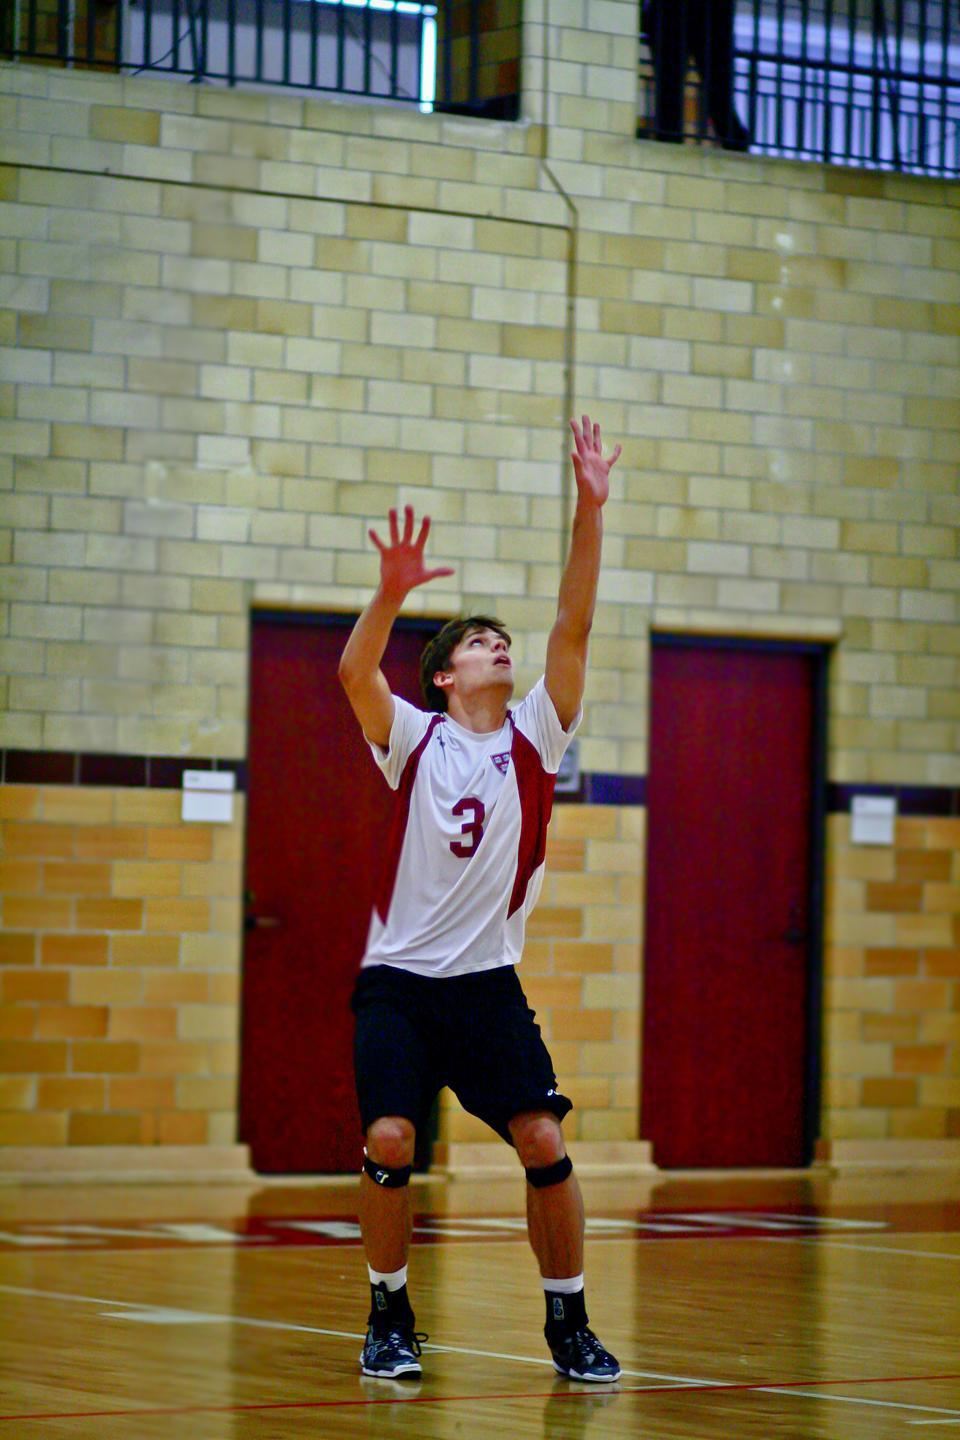 The Crimson defense, including freshman Will Chambers, shown above in earlier action, was unable to stop the George Mason attack on Thursday. Harvard fell to the Patriots in straight sets, which eliminated the squad from the Eastern Intercollegiate Volleyball Association Playoffs.